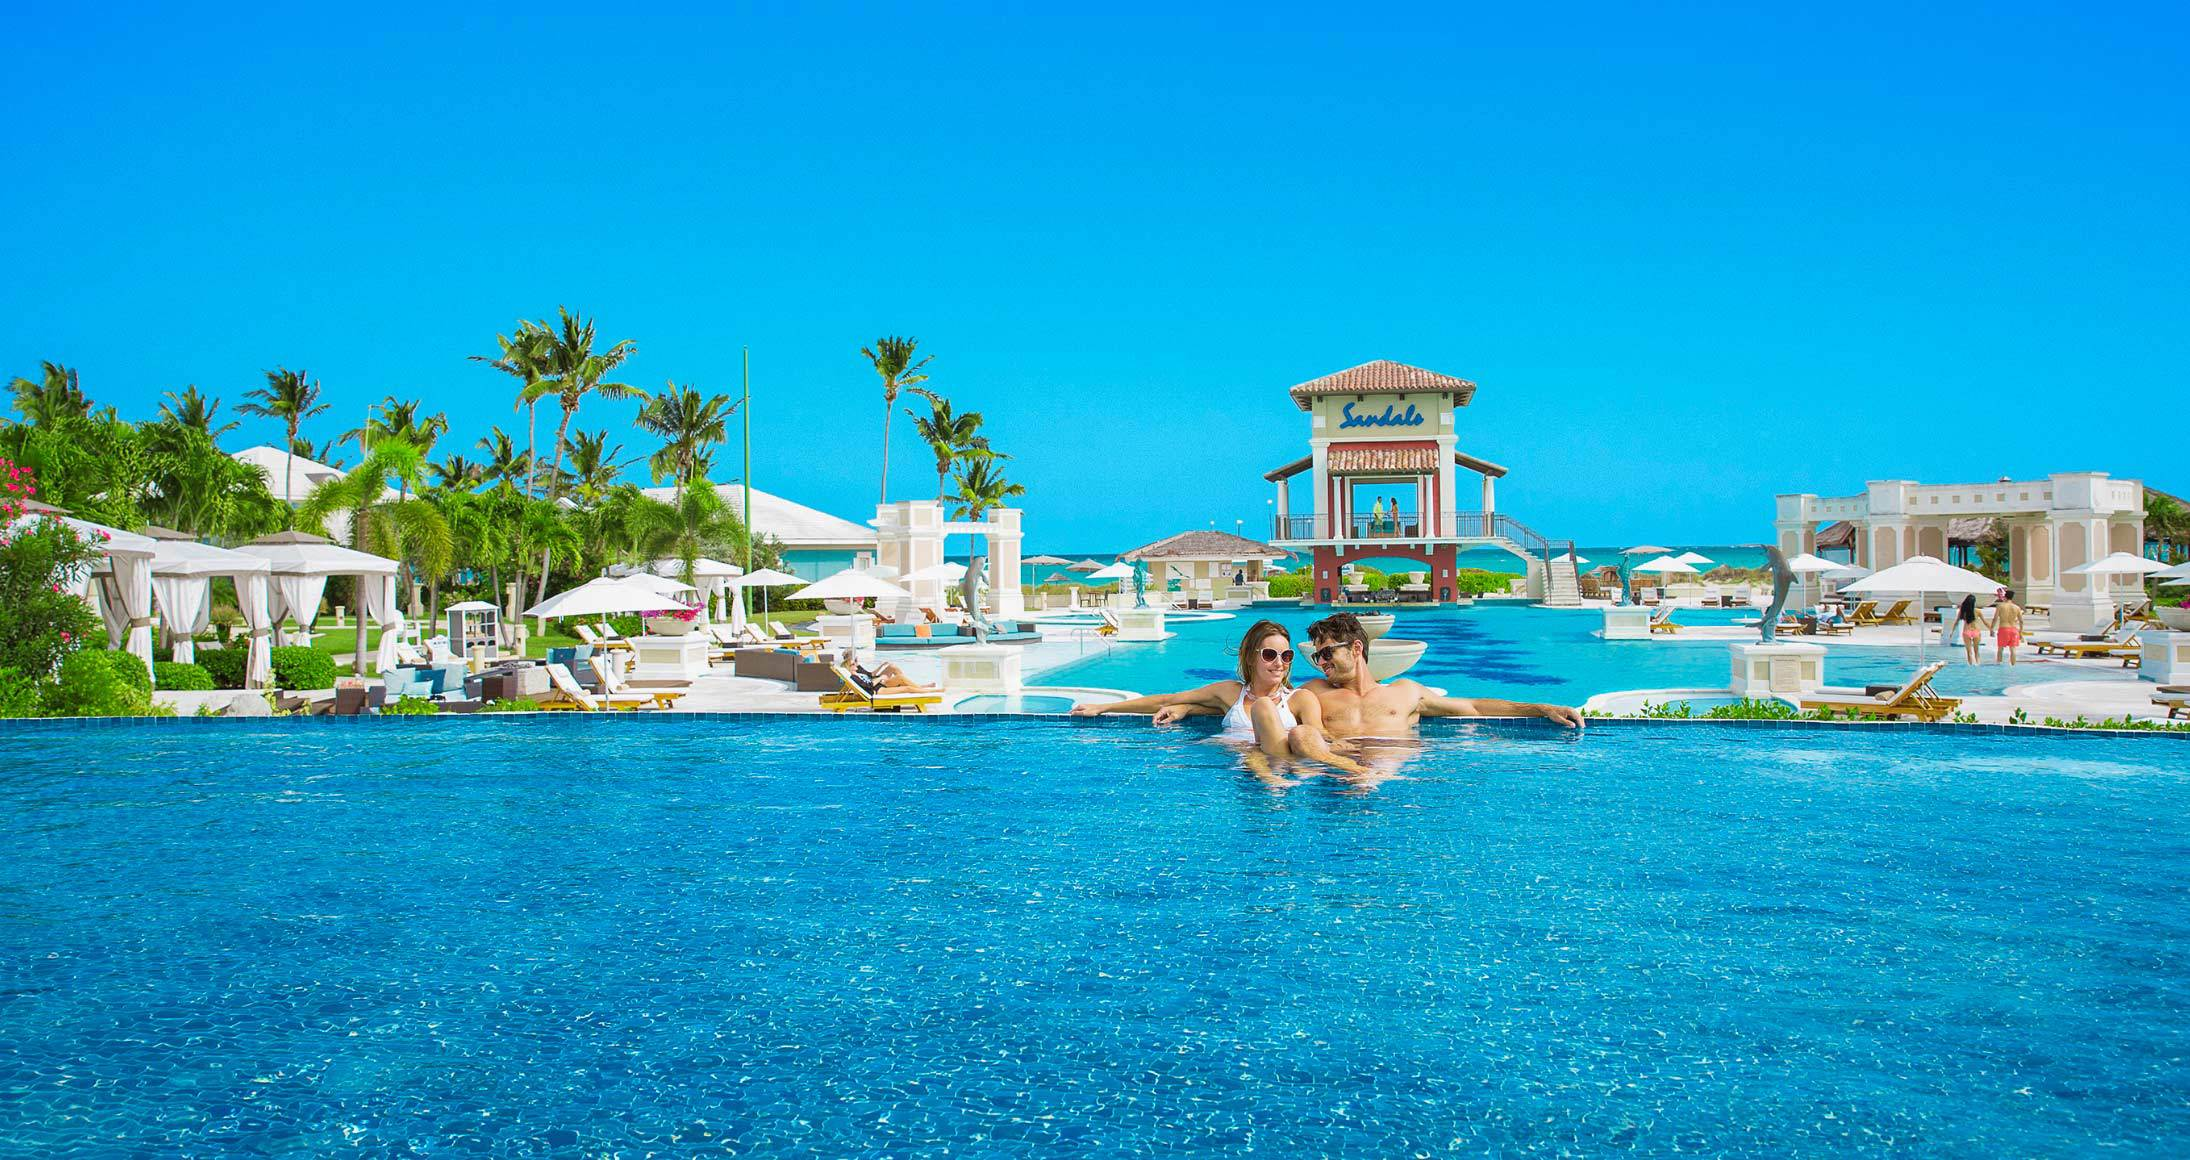 f99b983af32c3 Sandals Emerald Bay - All-Inclusive Luxury Resort in Great Exuma ...